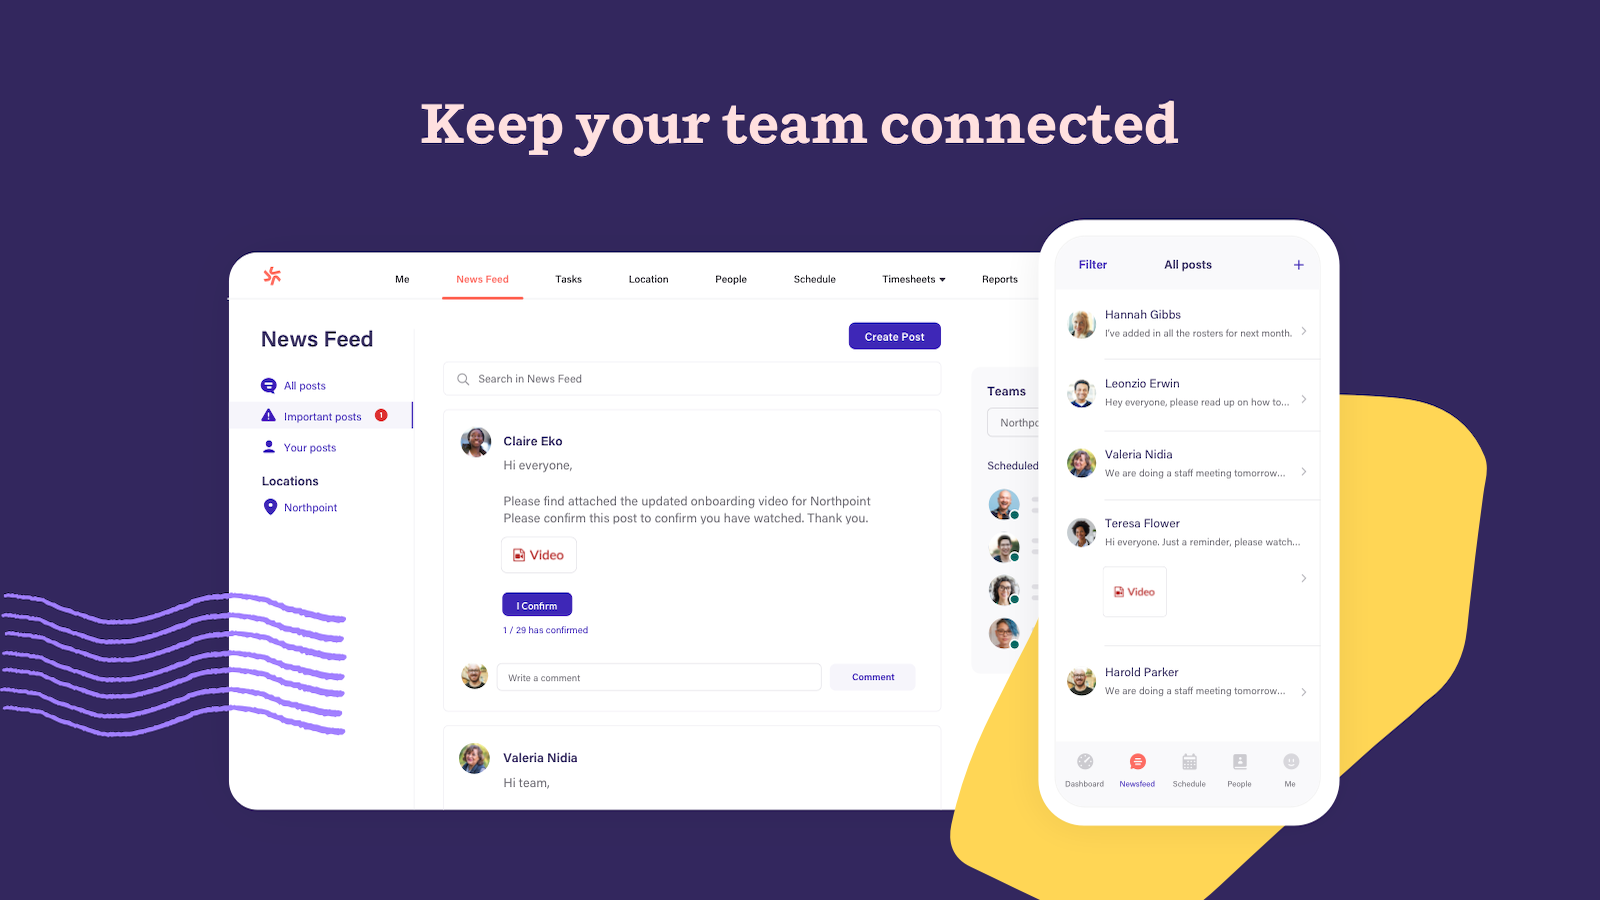 Stay connected with your team on all devices